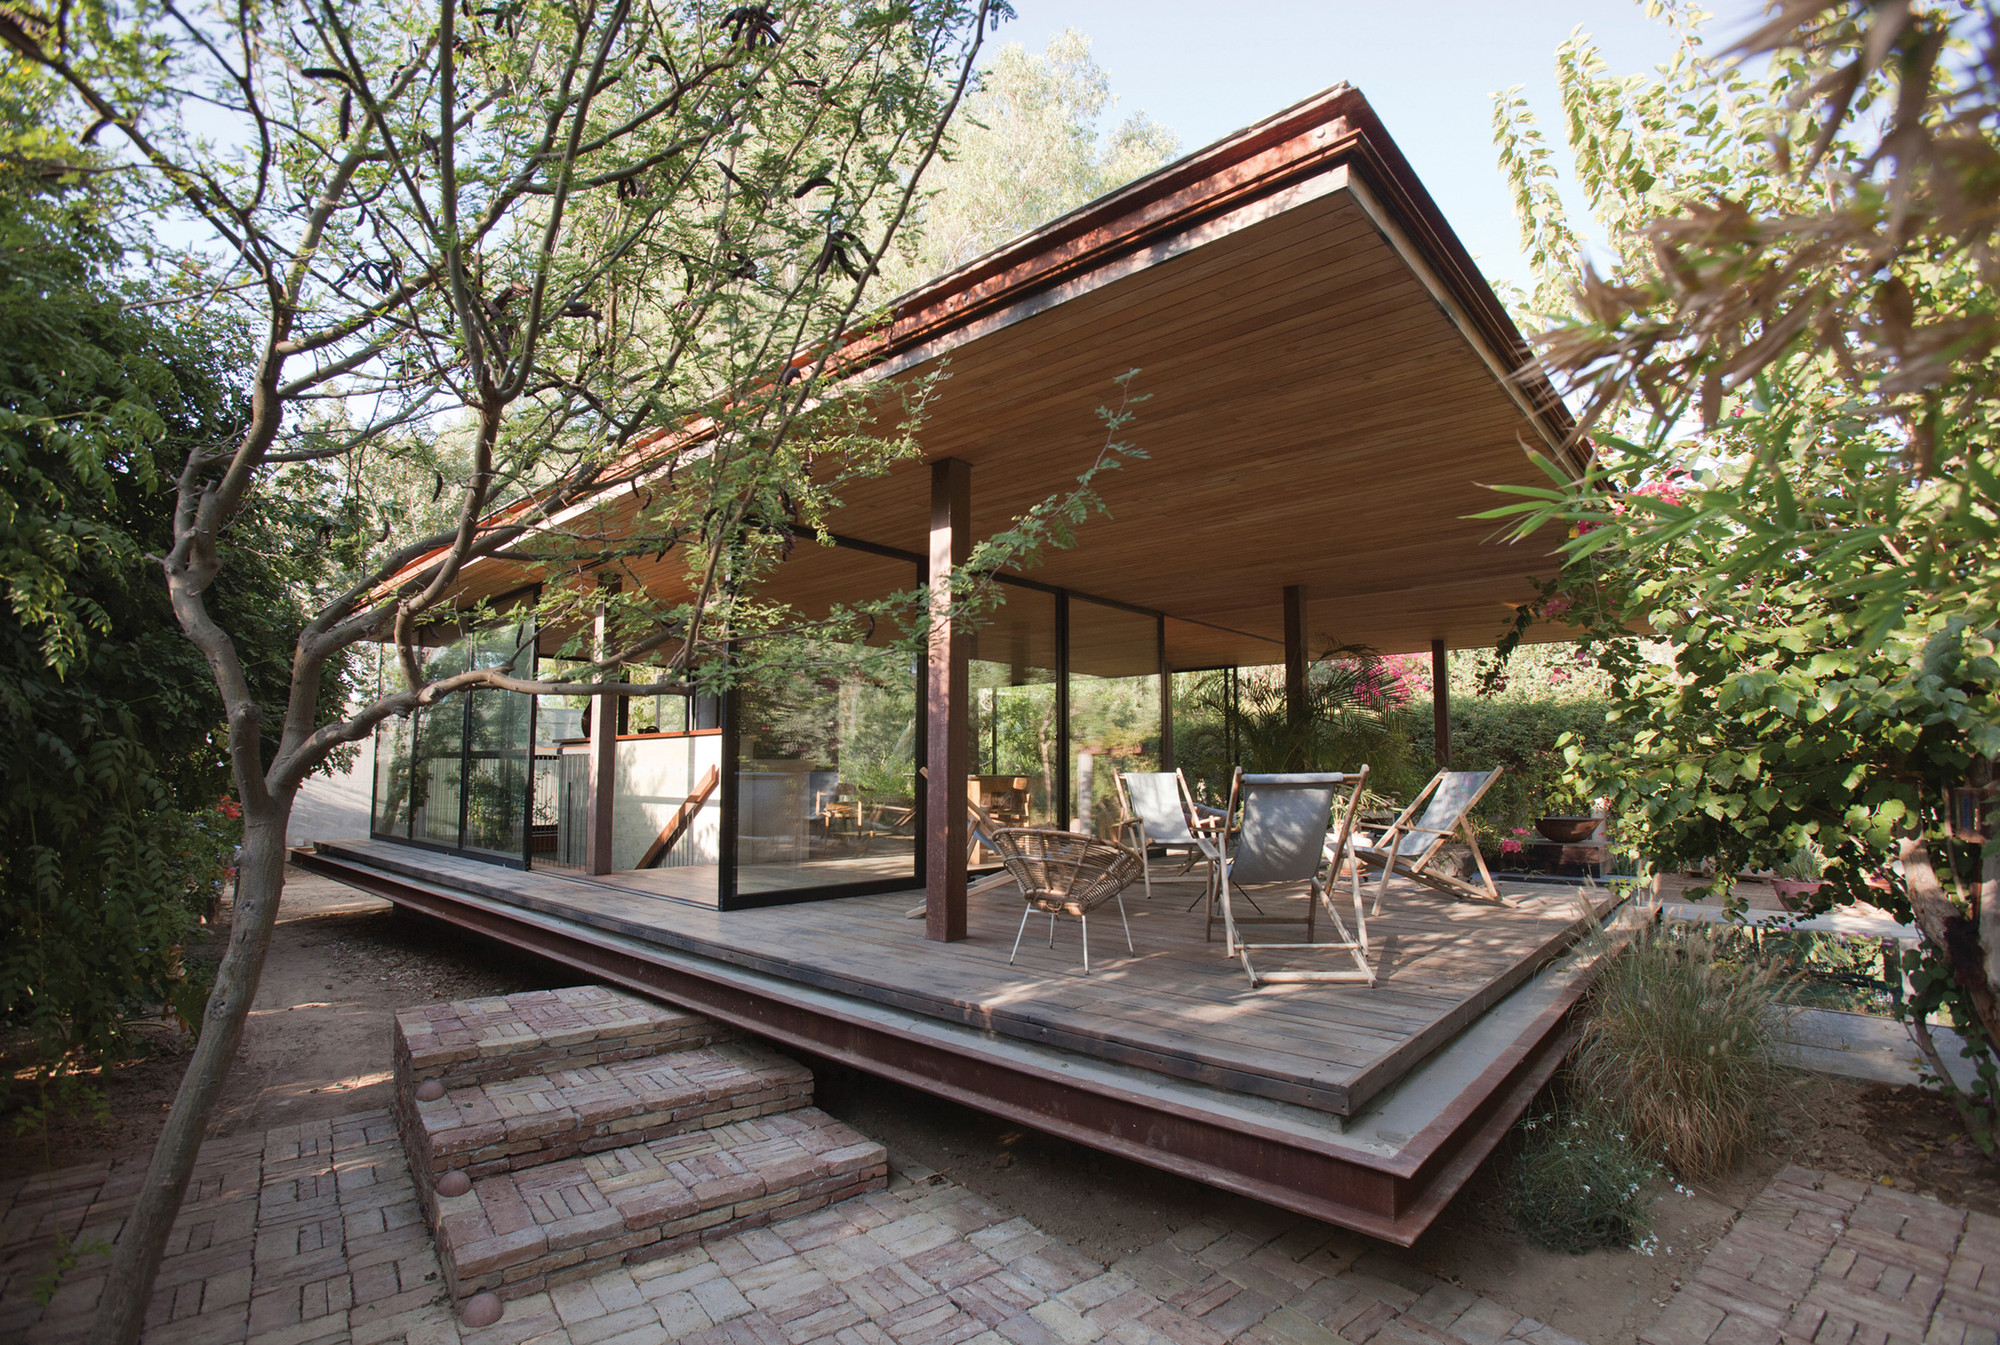 Pavilion at Architect's Residence / Kythreotis Architects, © Stelios Kallinikou